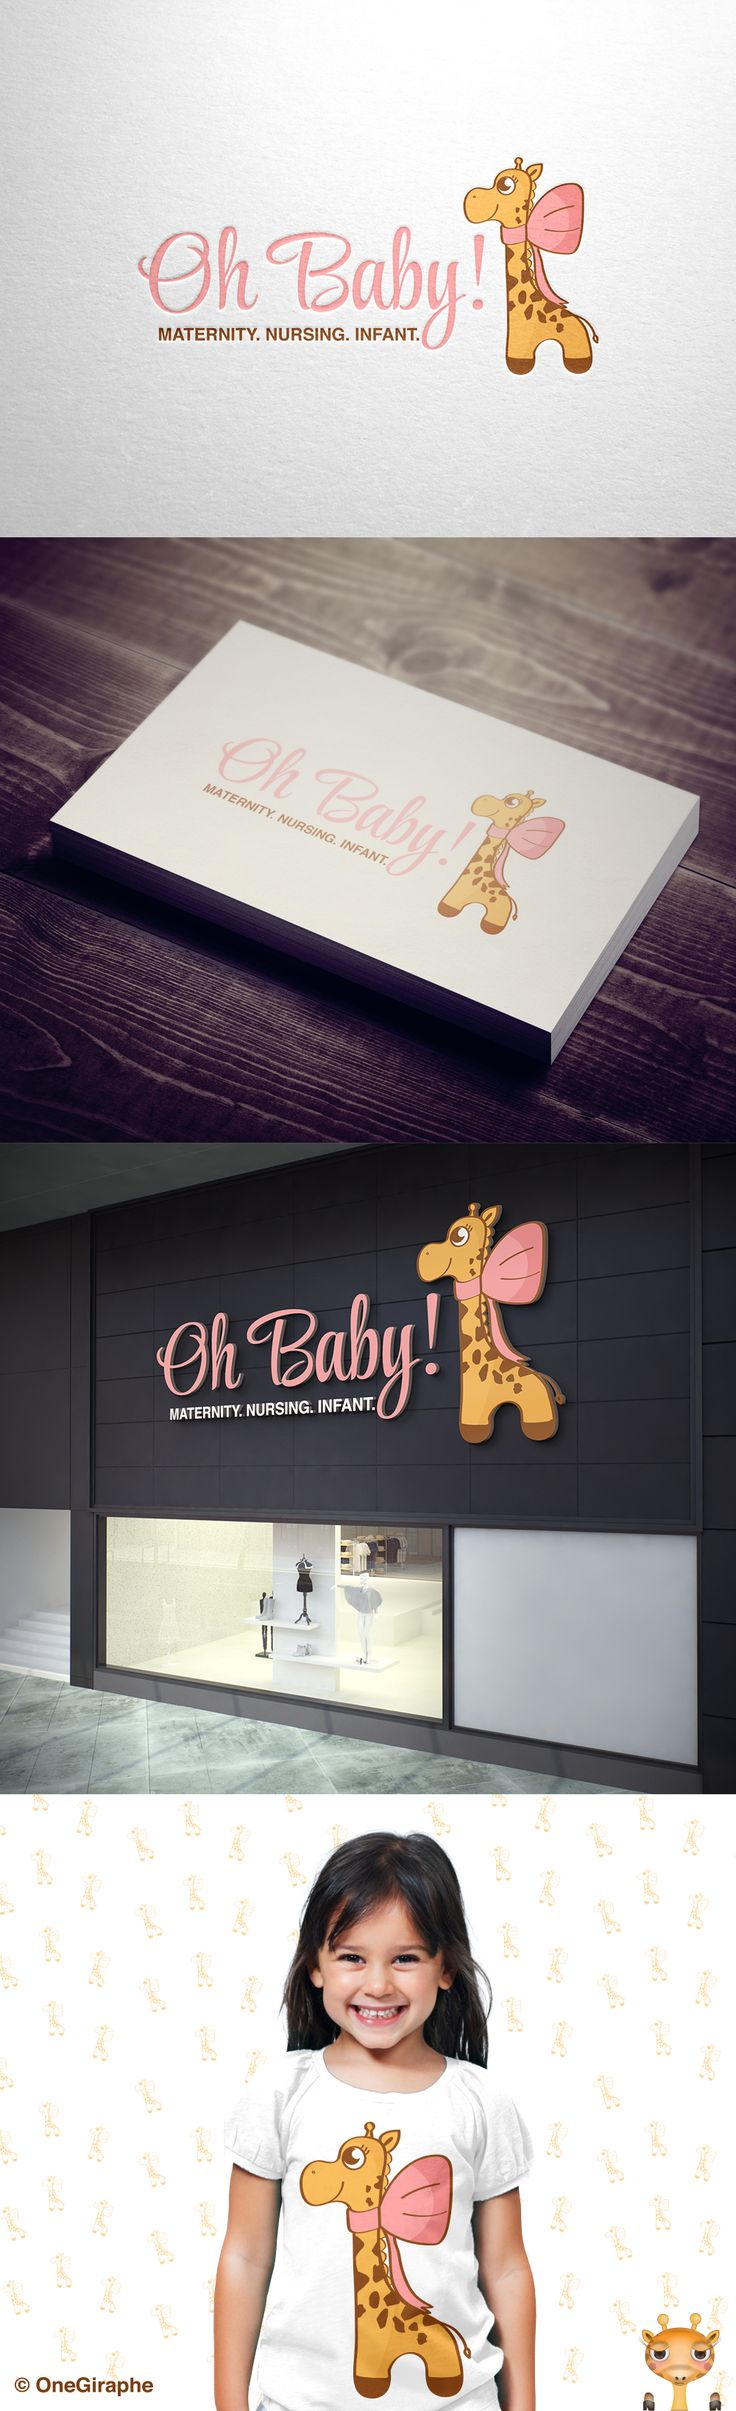 #baby #diaper #giraffe #child #children #mom #mother #girl #care #mothercare #store #shop #logostore #kids #animals #little #cute #logoforsale #logostore #brandstack #logo #logodesign #graphicdesign #logopond #behance #logo